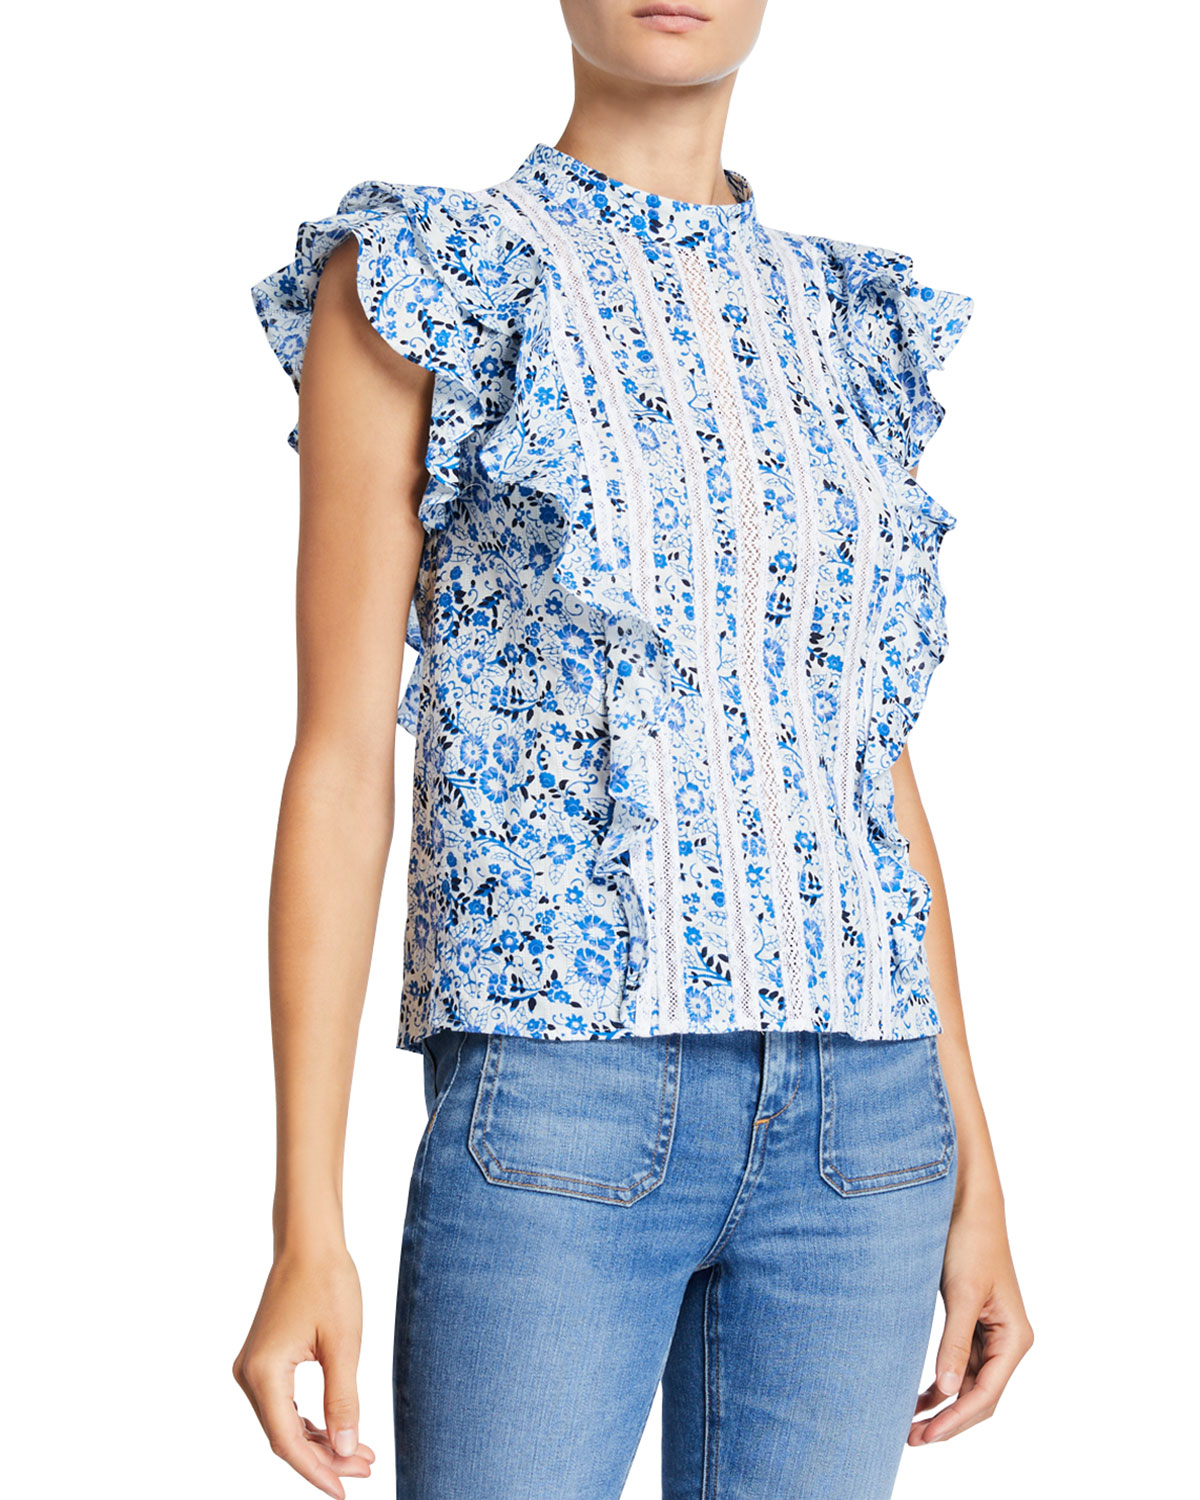 Veronica Beard Tops SOL PRINTED LACE RUFFLE TOP